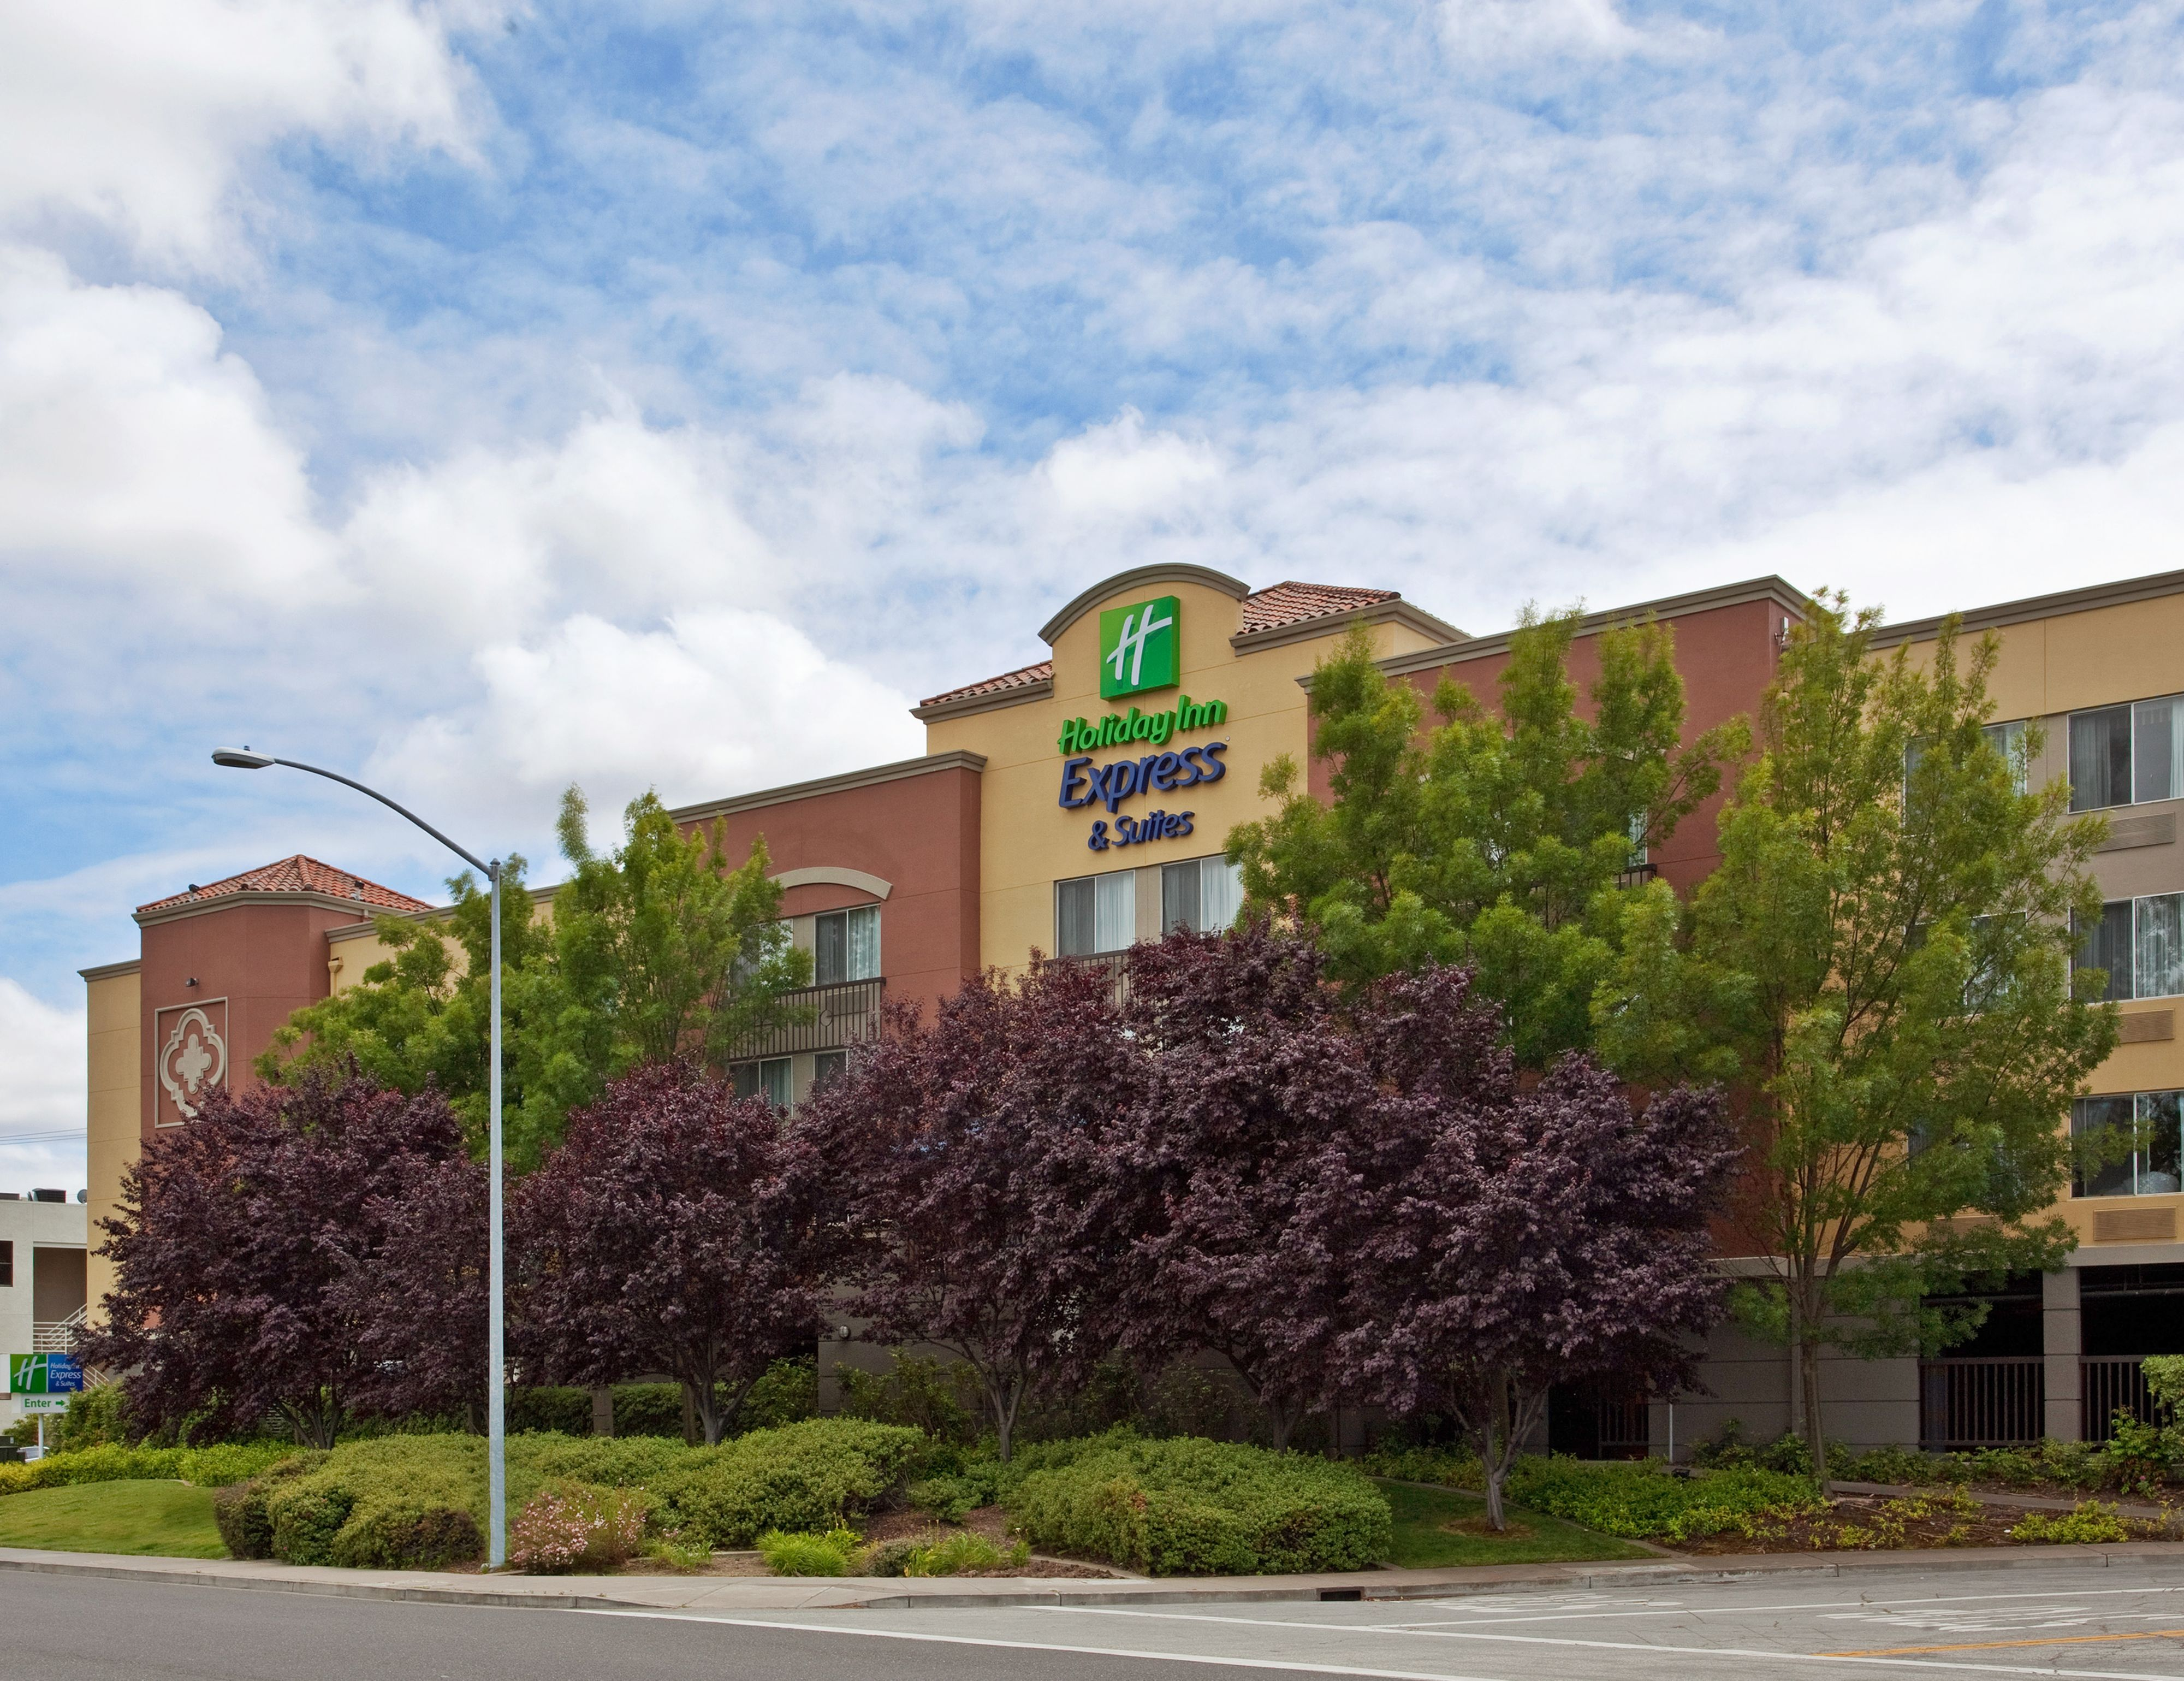 Holiday Inn Express & Suites Bellevue (Omaha Area) image 3